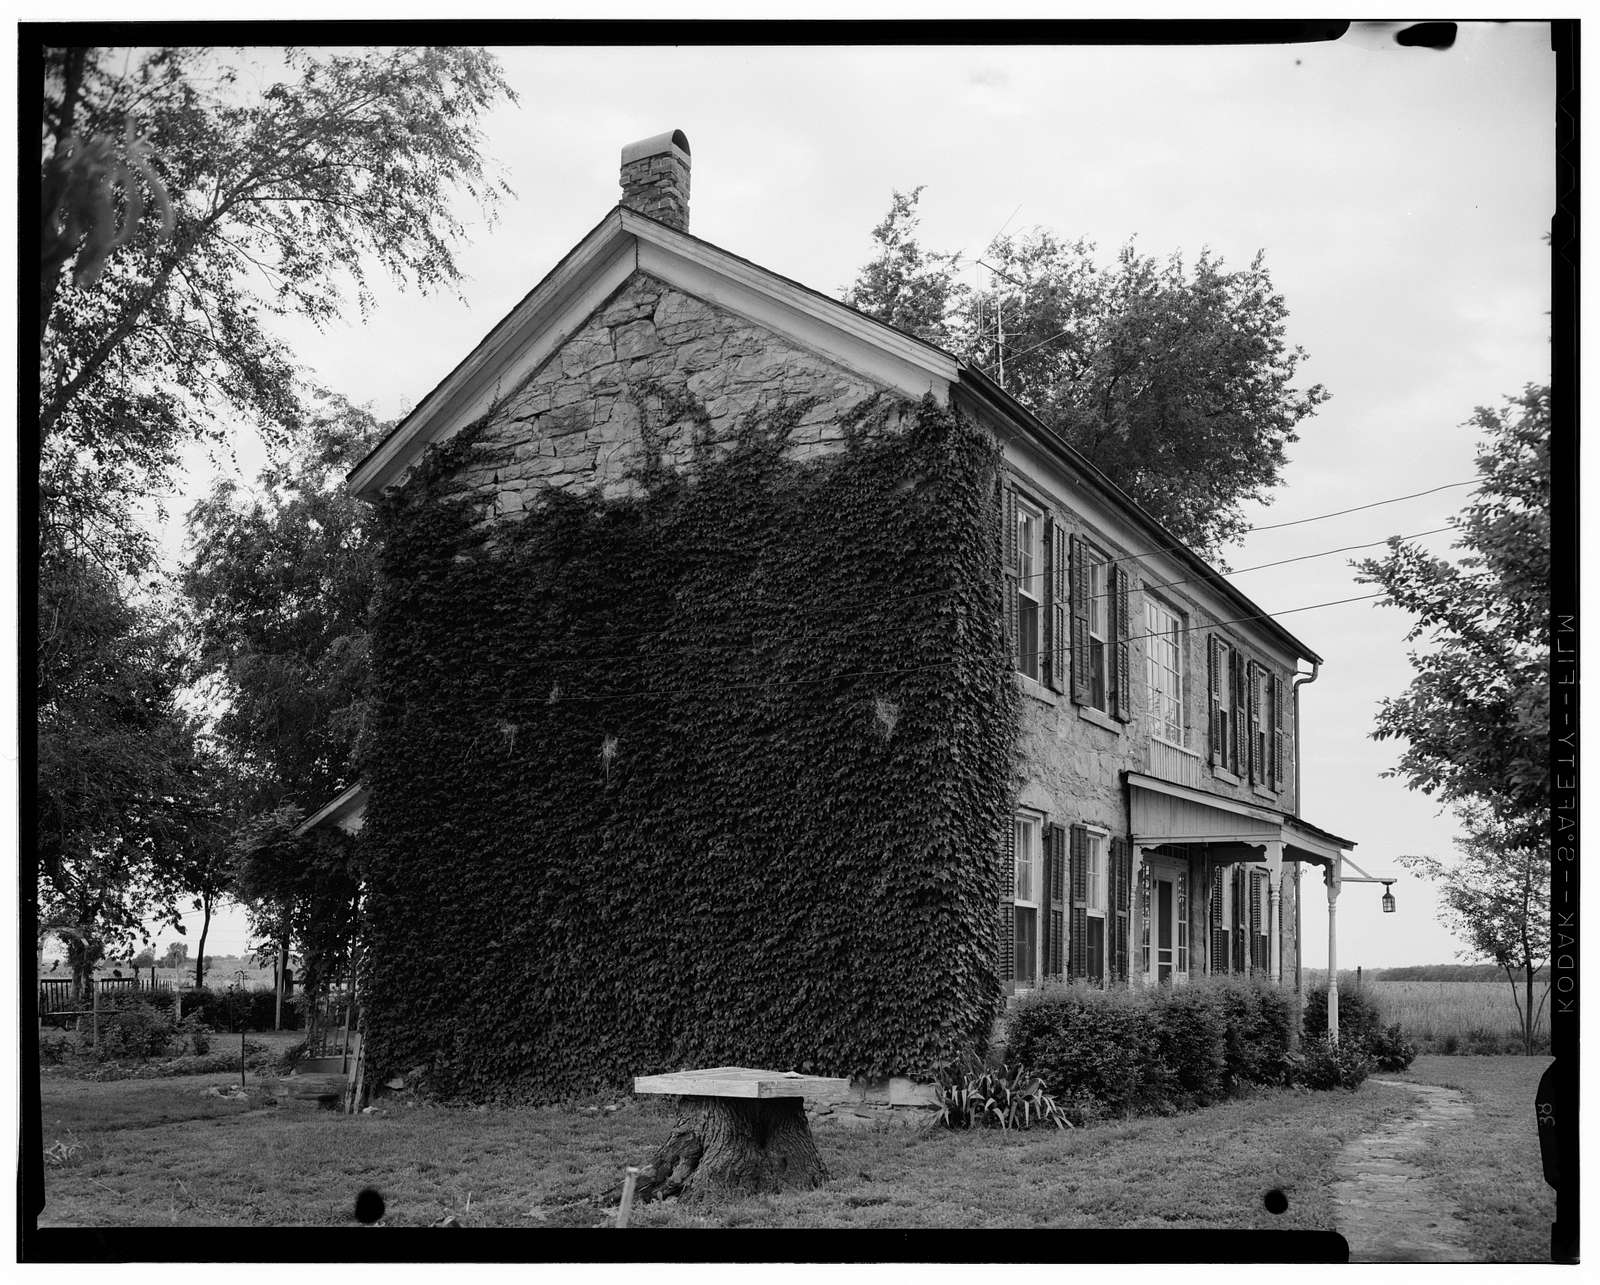 Indian Agency House, U.S. Route 1, Silver Lake, Shawnee County, KS